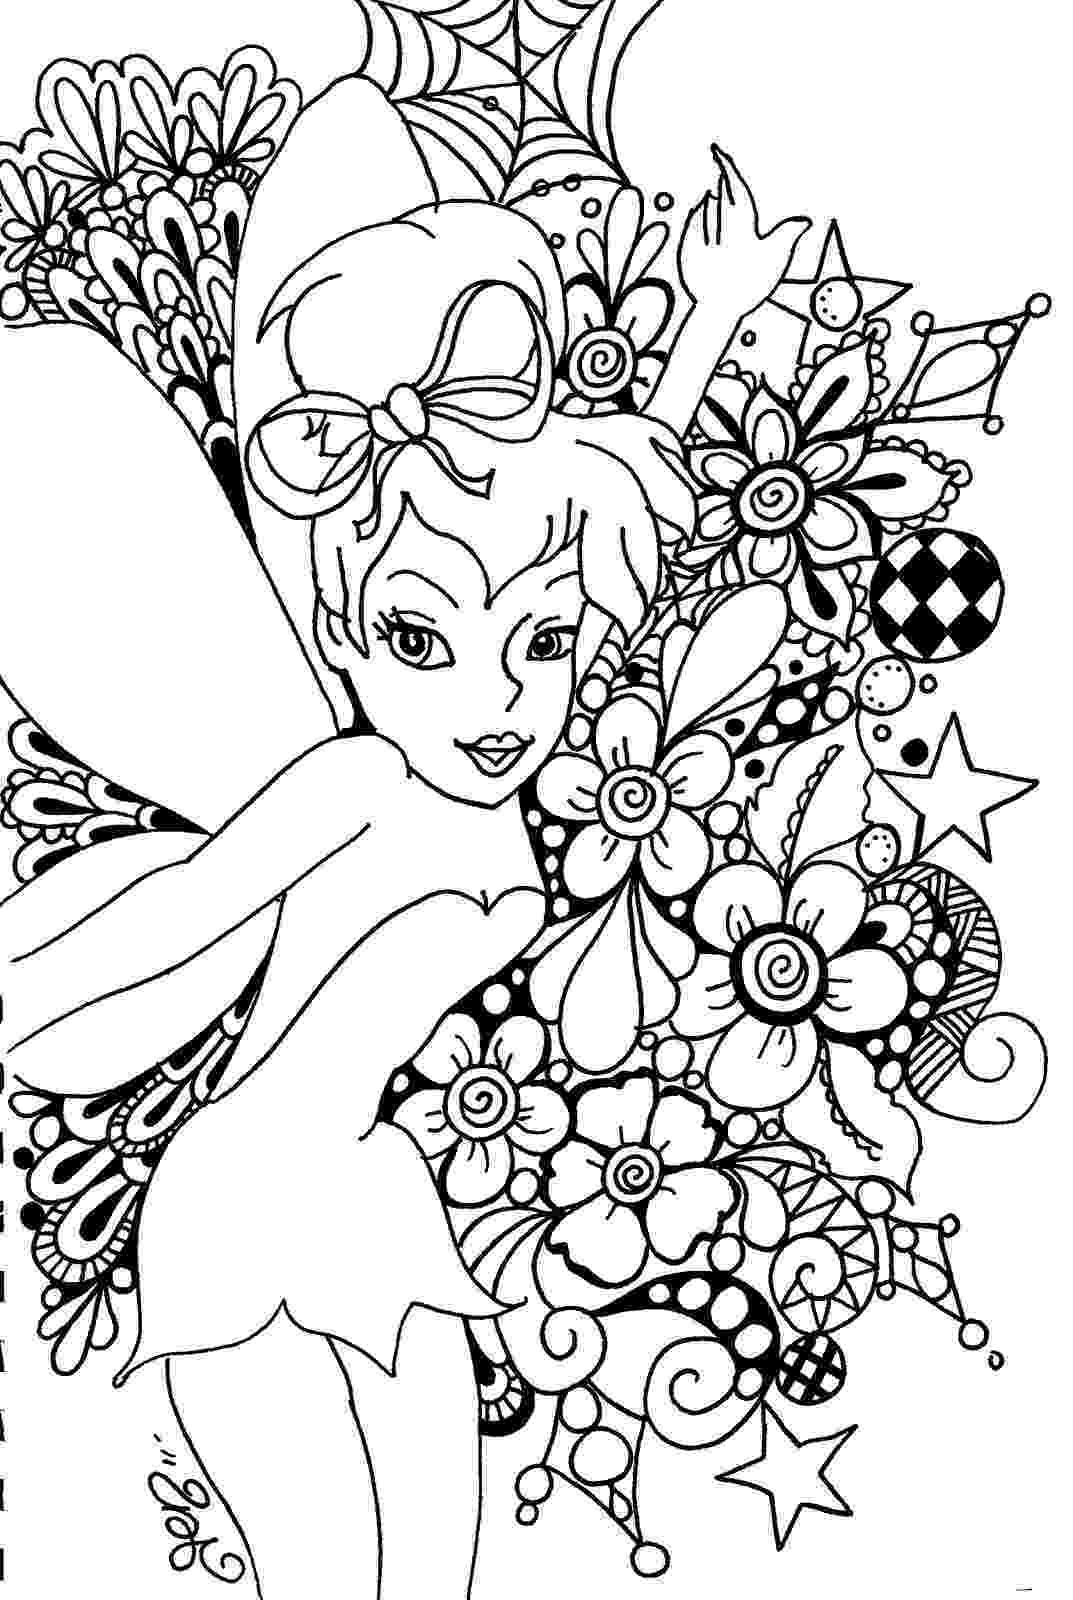 fairy pictures to color fairy coloring pages for adults best coloring pages for kids color fairy to pictures